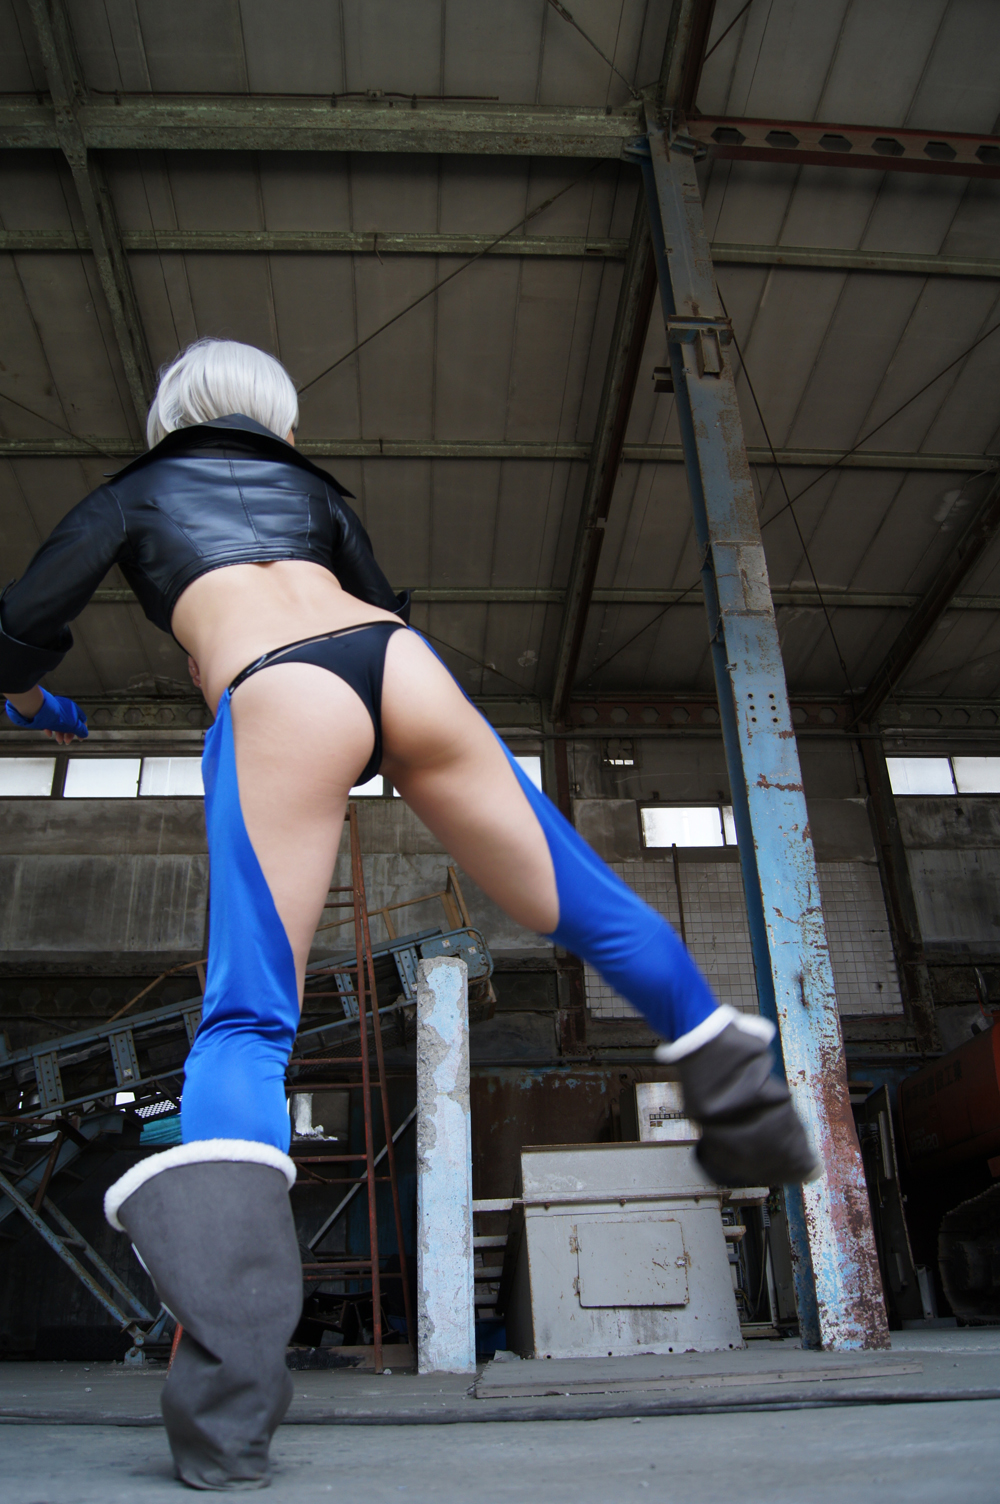 angel king of fighters sexy pics